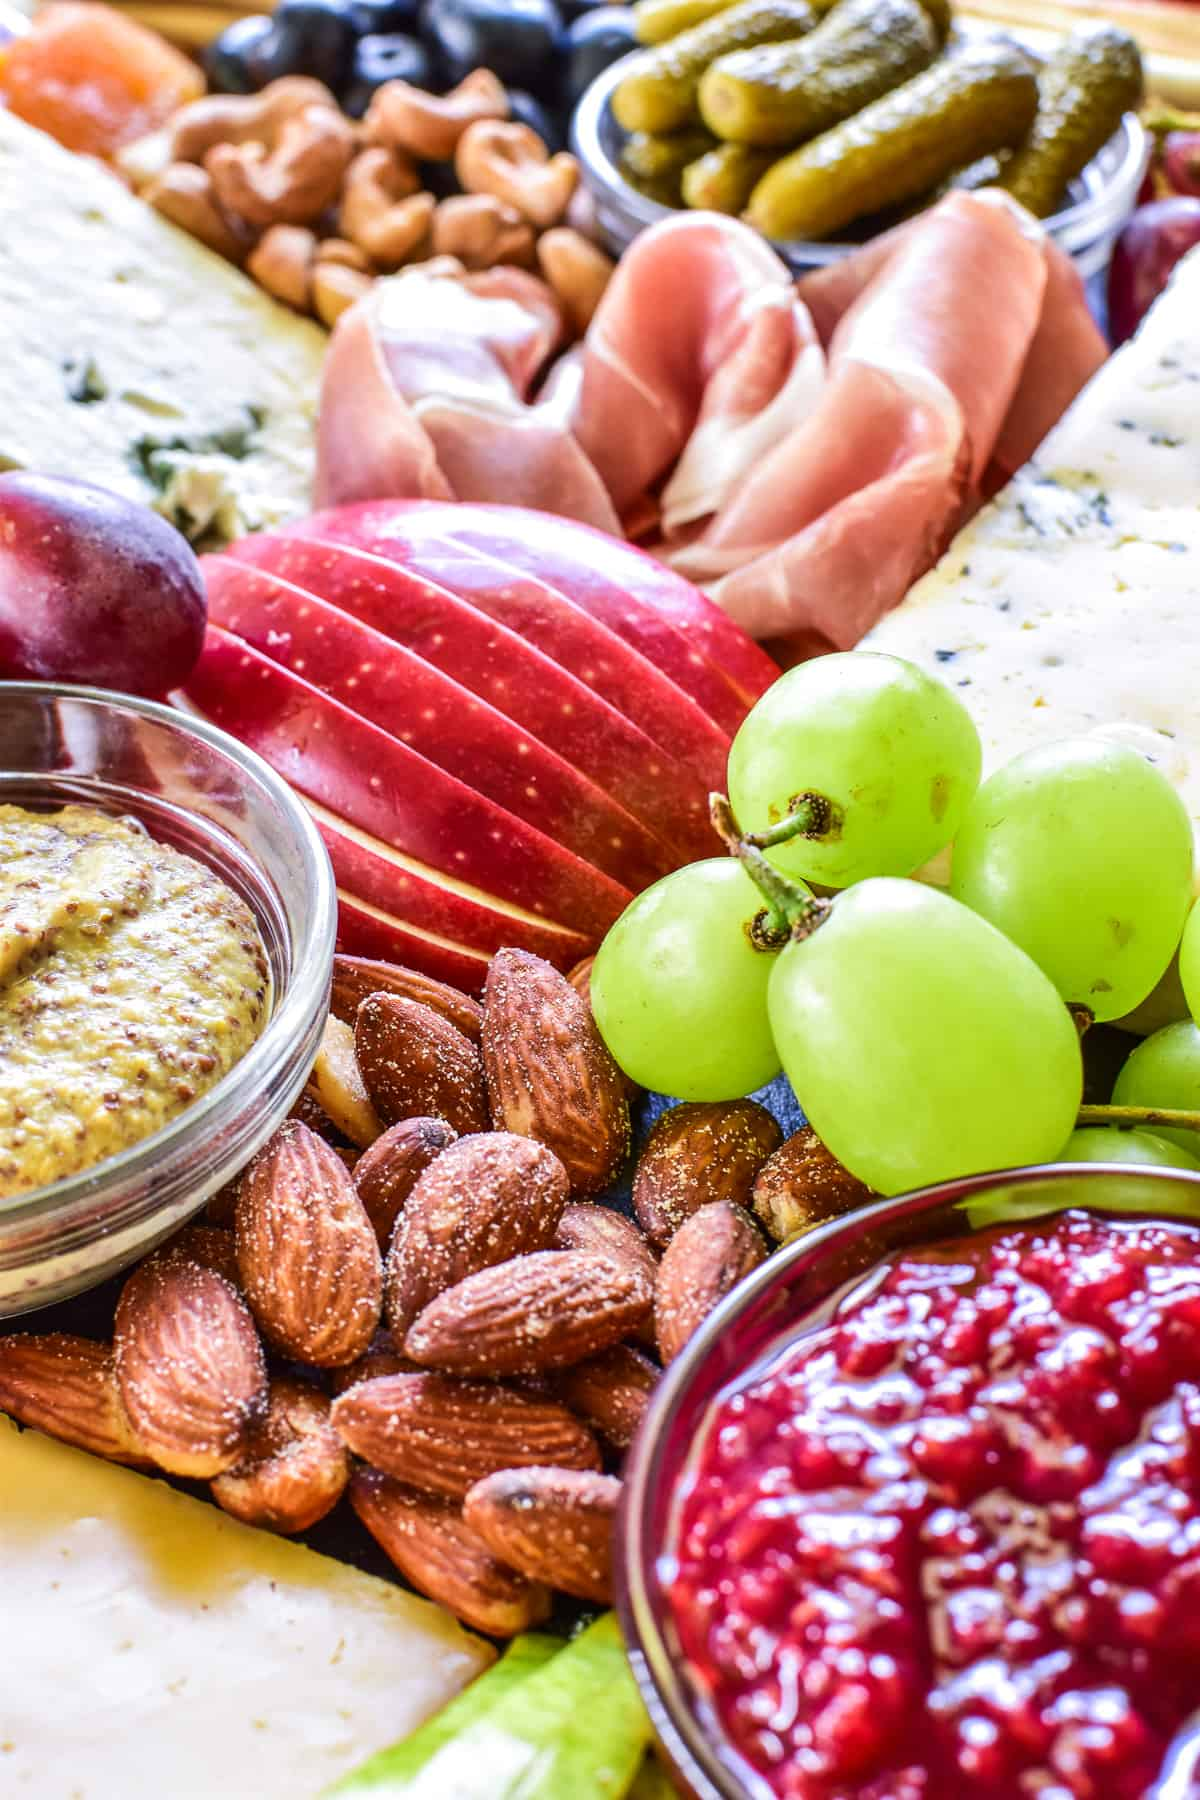 Close up of grapes, apples, almonds, and more on a charcuterie board